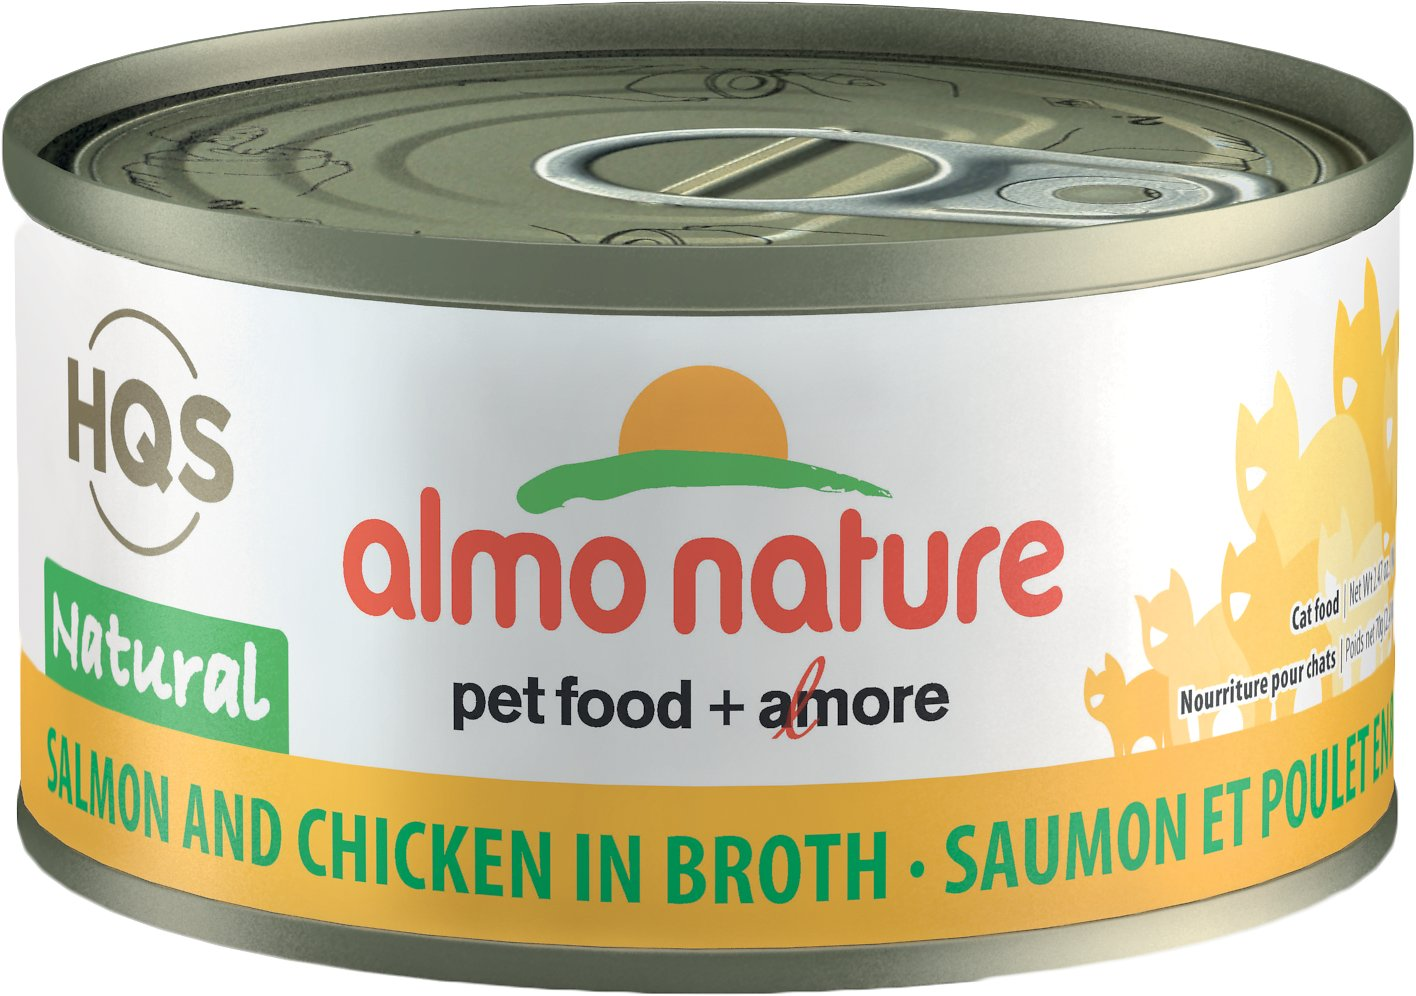 Almo Nature Natural Salmon & Chicken in Broth Grain-Free Canned Cat Food, 2.47-oz